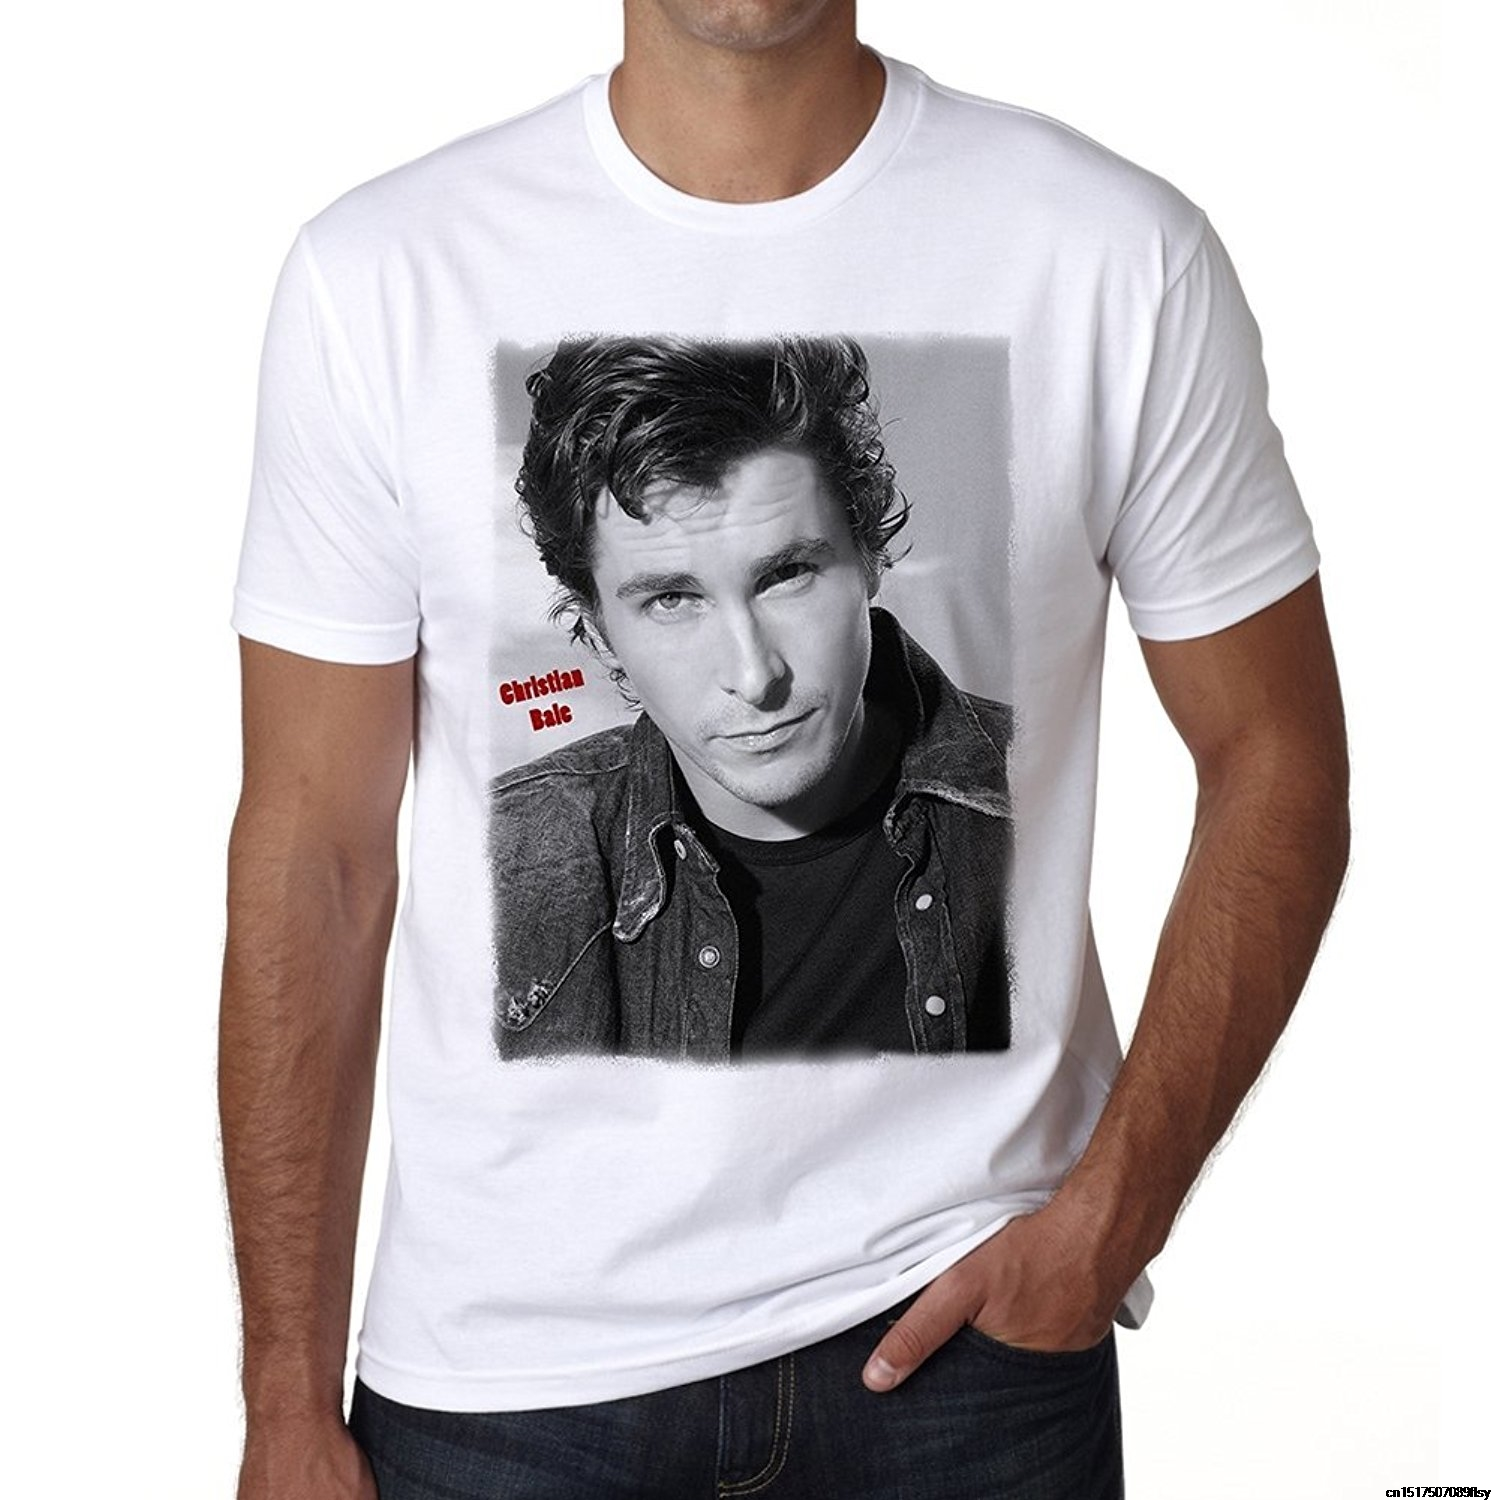 Adult Slim Fit T Shirt T Shirt Good Quality T Shirt Tops Christian Bale MenS T Shirt Celebrity Star One In The City